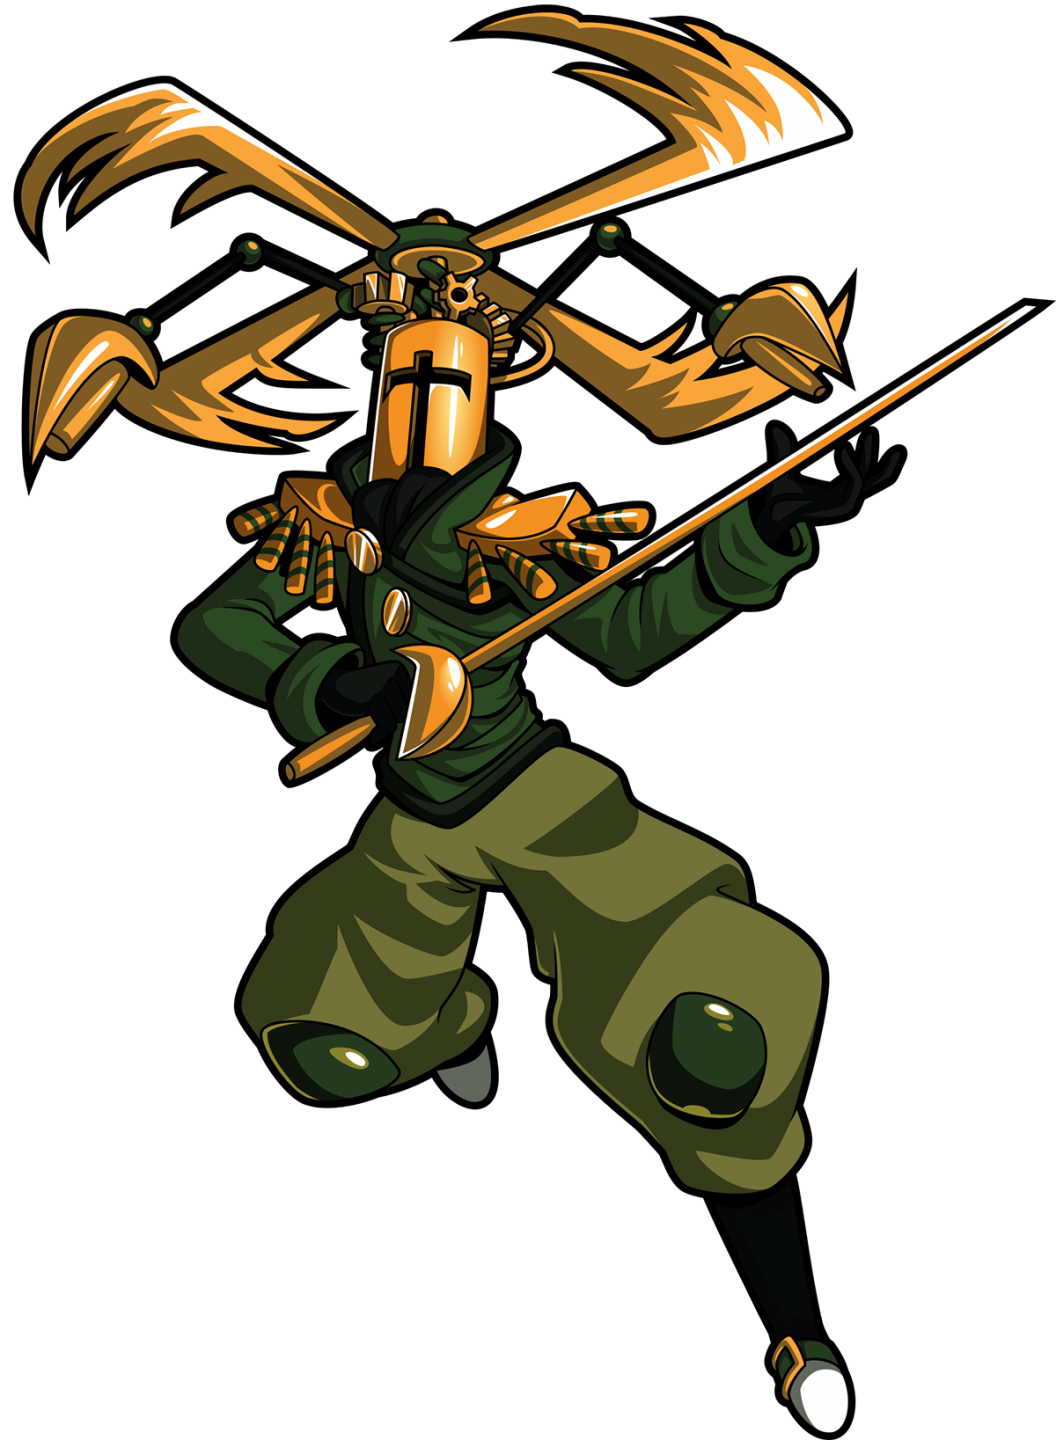 Propeller_Knight_Treasure_Trove.png